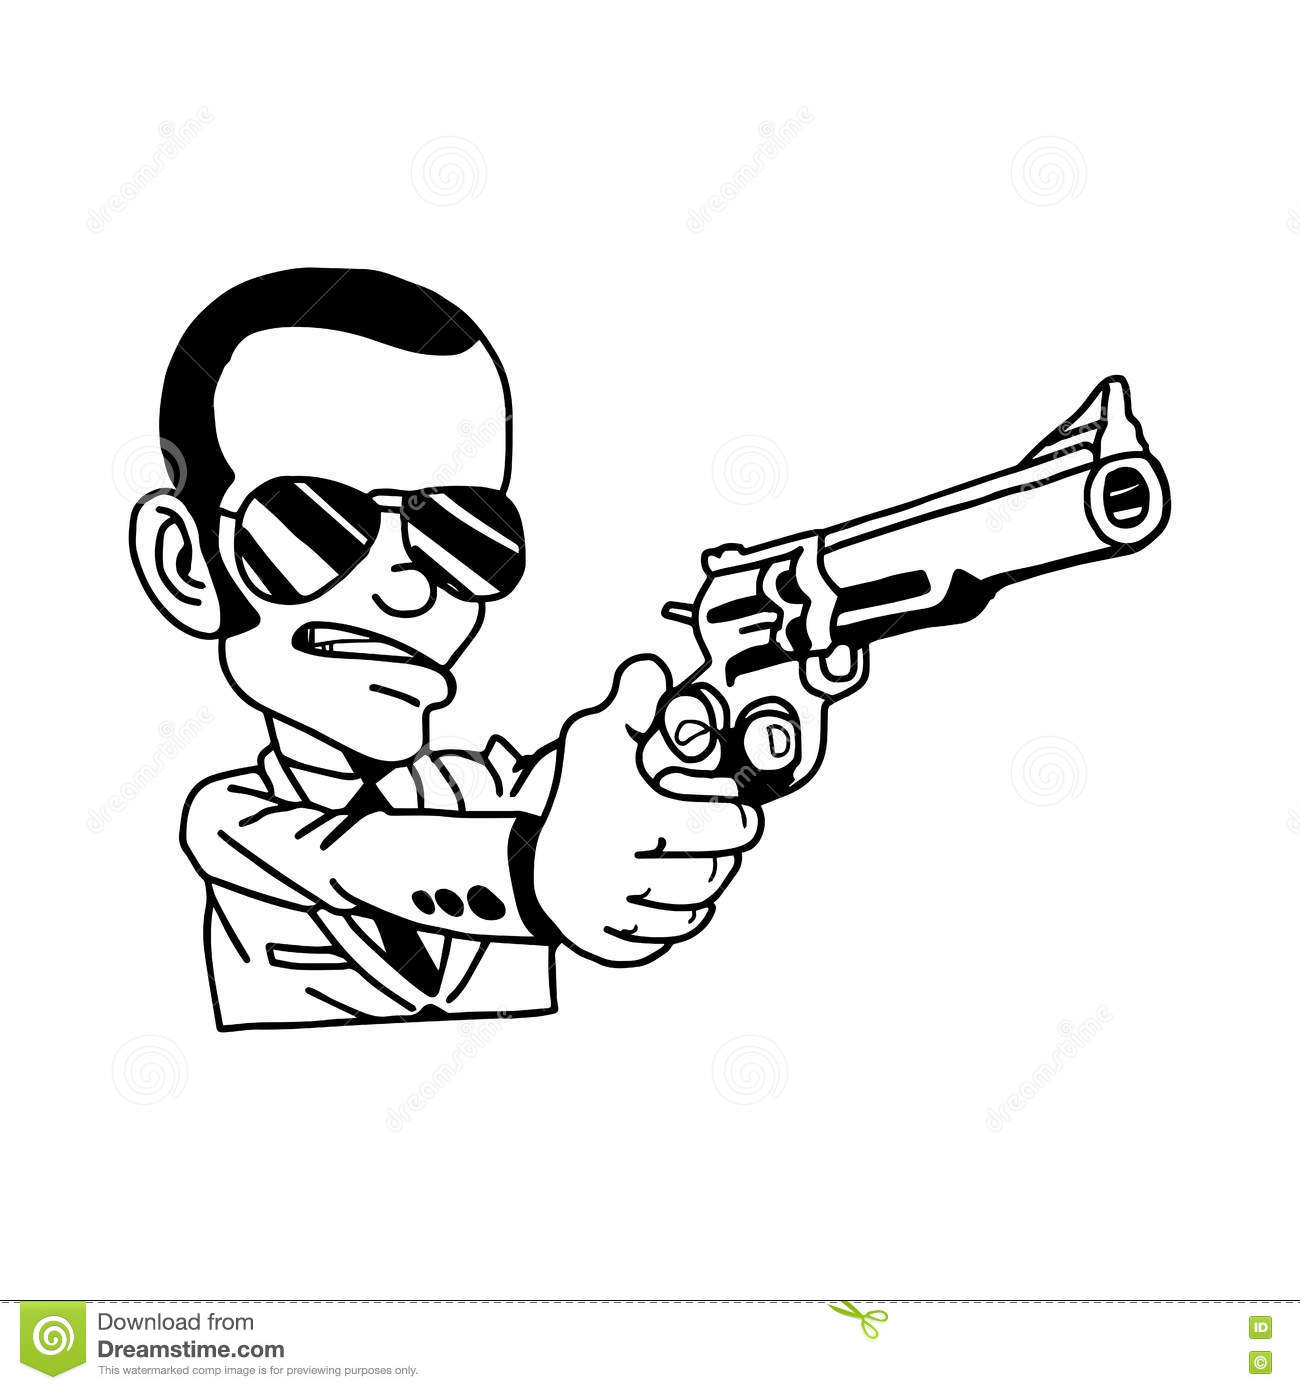 This is a graphic of Superb Man Holding Gun Drawing